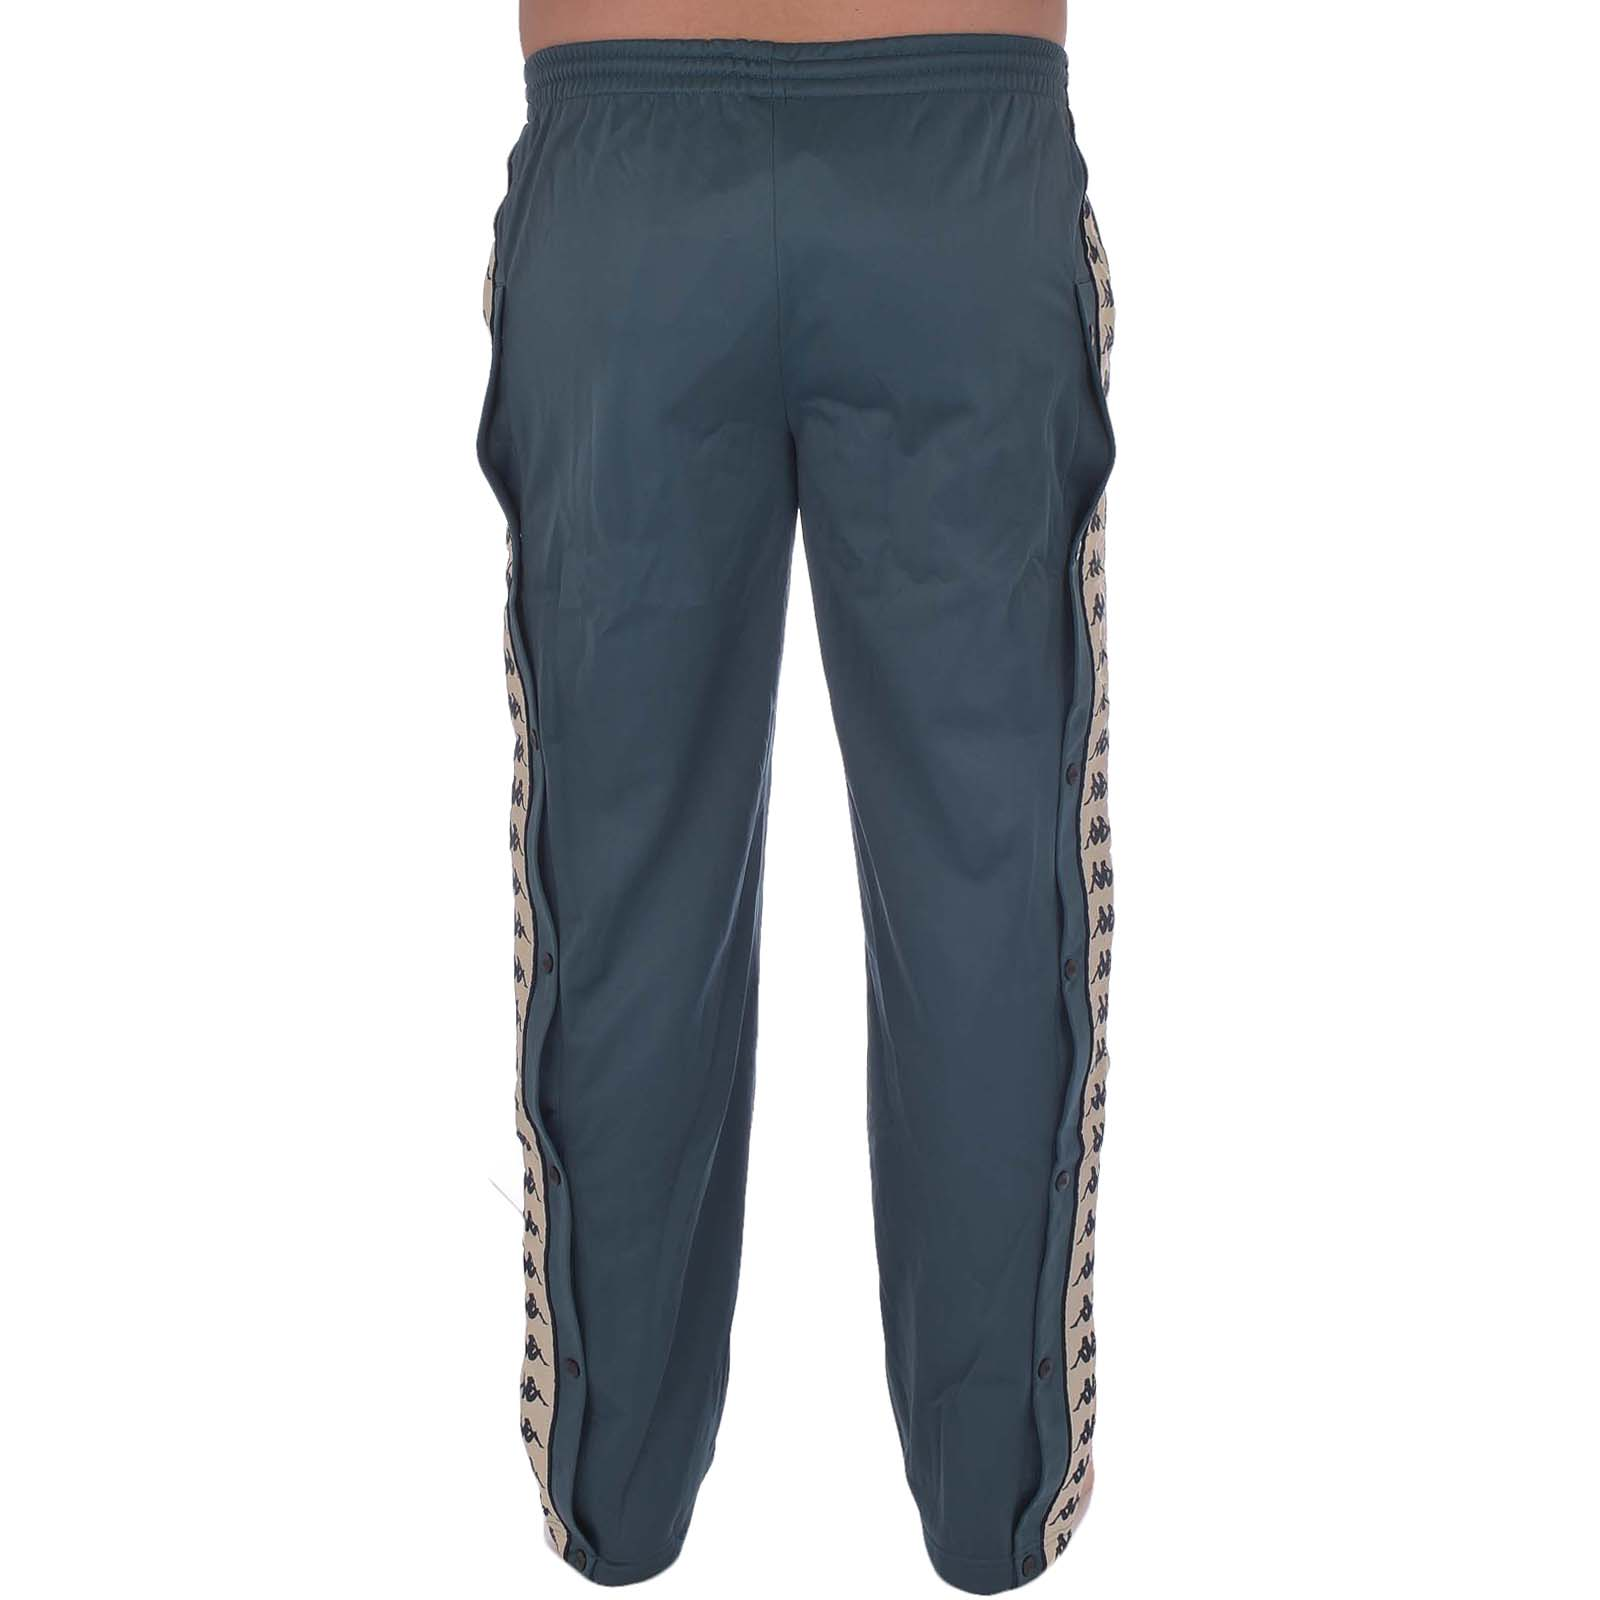 Kappa Mens 222 Banda Astoria Snaps Retro Straight Leg Casual Tracksuit Pants